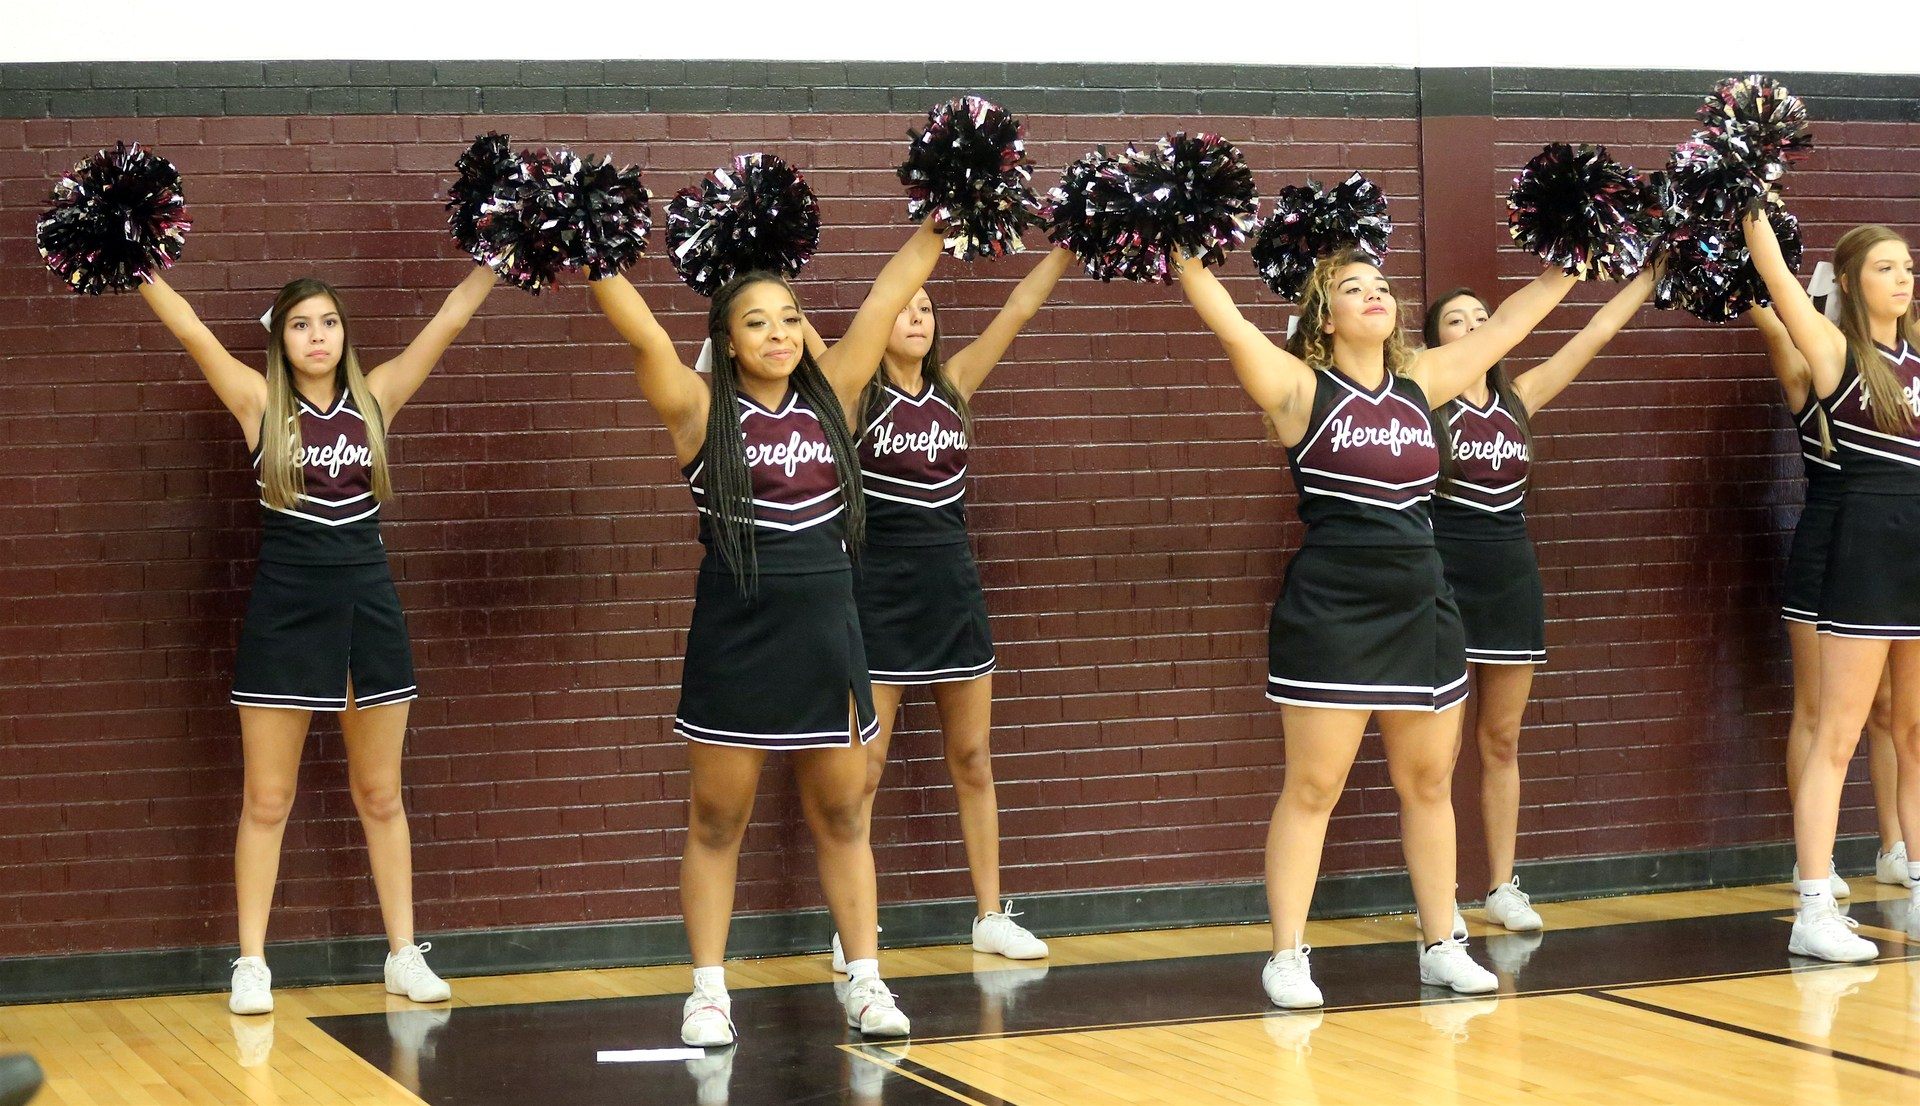 Varsity Cheerleaders Dumas Volleyball